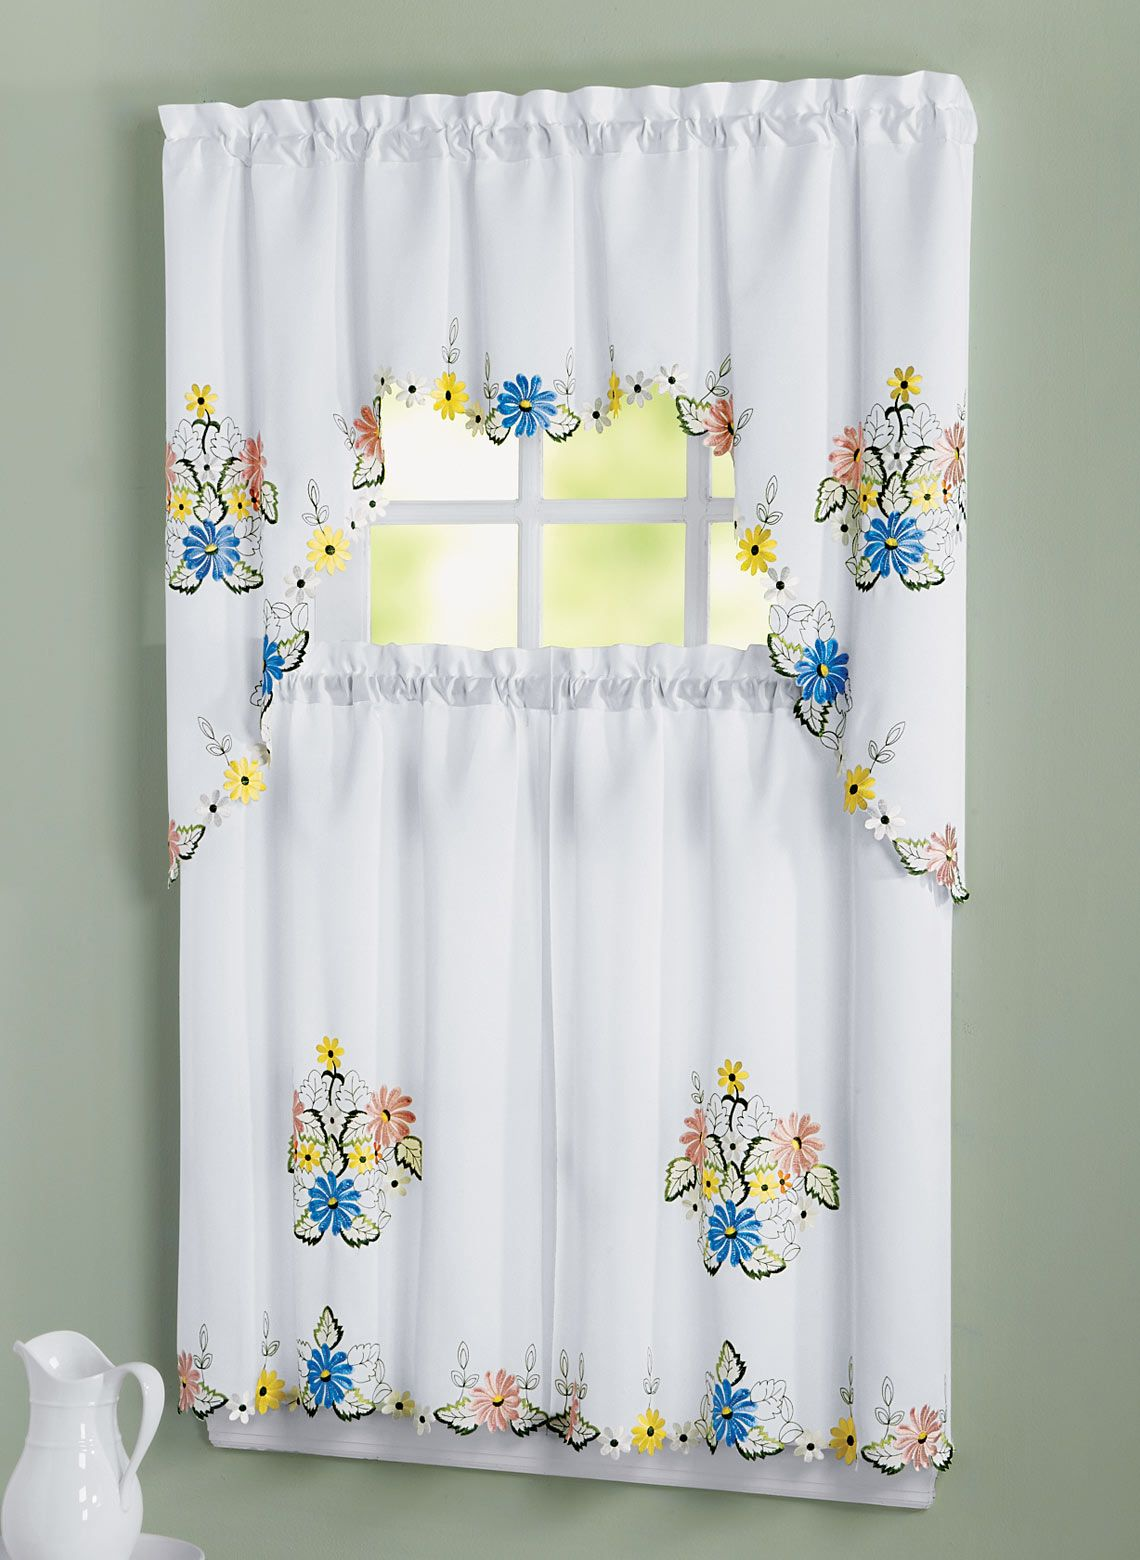 e8a1bd5011397074df8a254345316ec1 - Better Homes And Gardens Ivy Kitchen Curtain Set